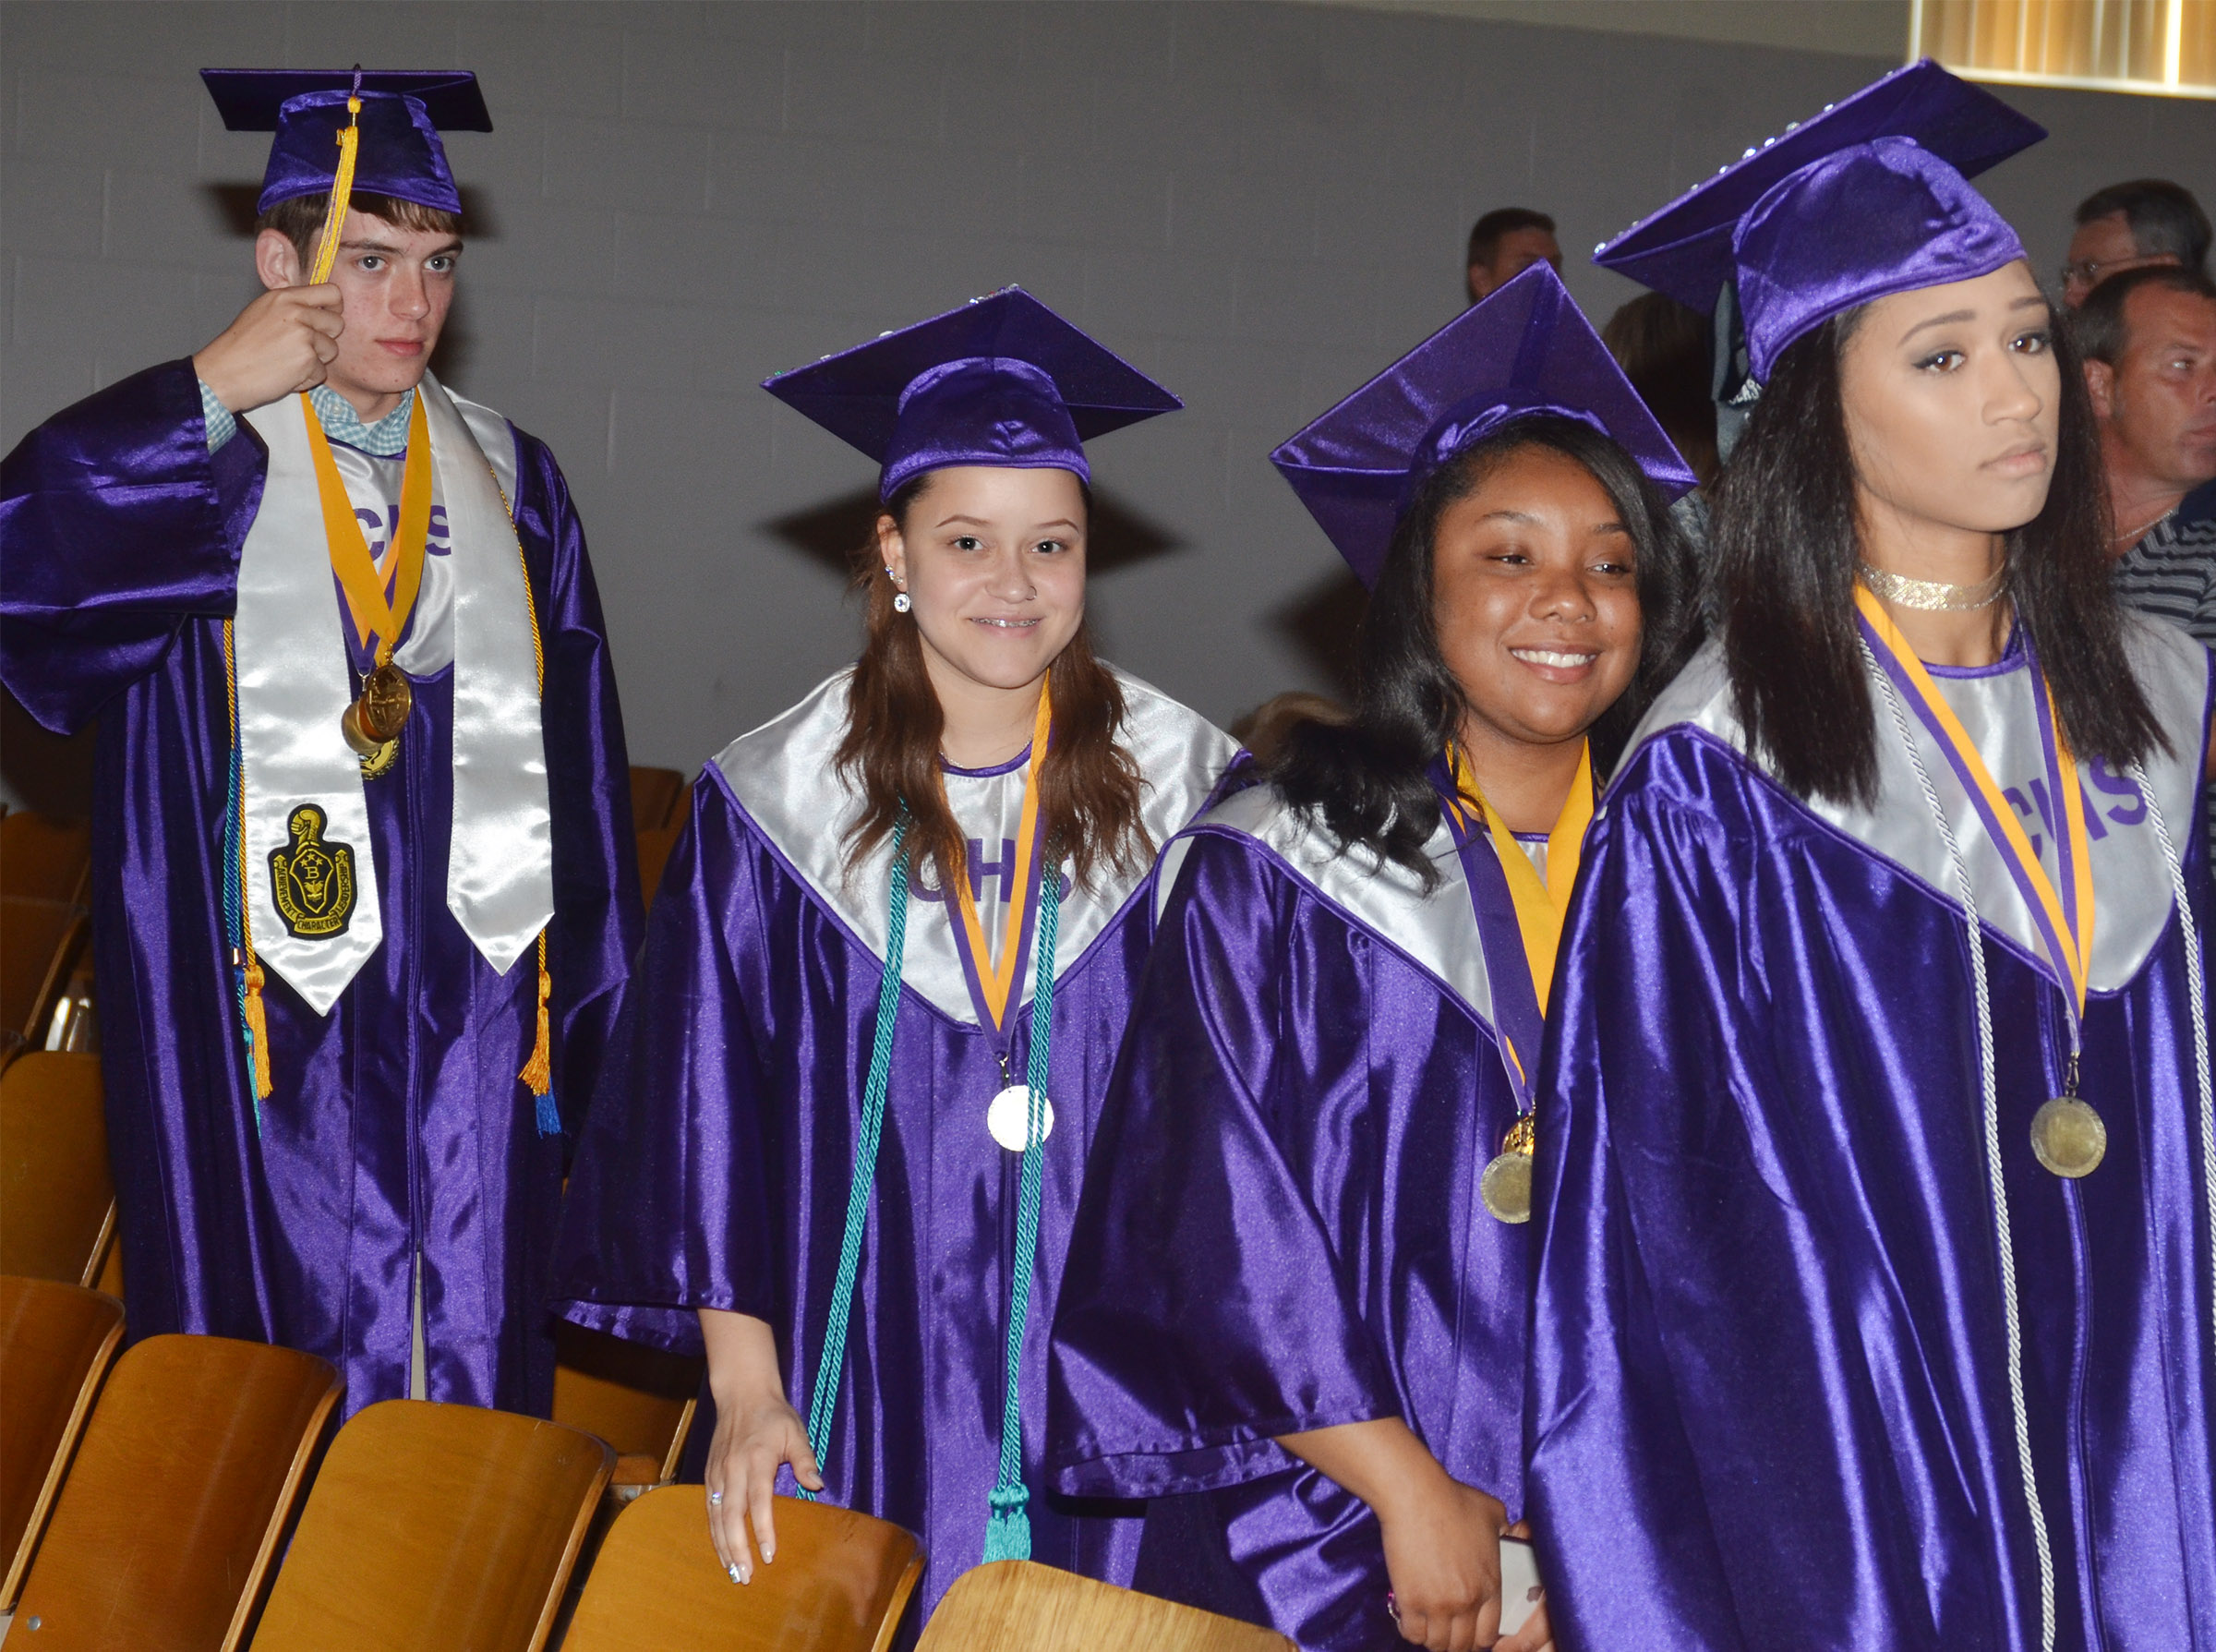 From left, CHS seniors Murphy Lamb, Breanna Spaulding, Kayla Atkinson and Alexis Shears walk out of Hamilton Auditorium after the baccalaureate ceremony.